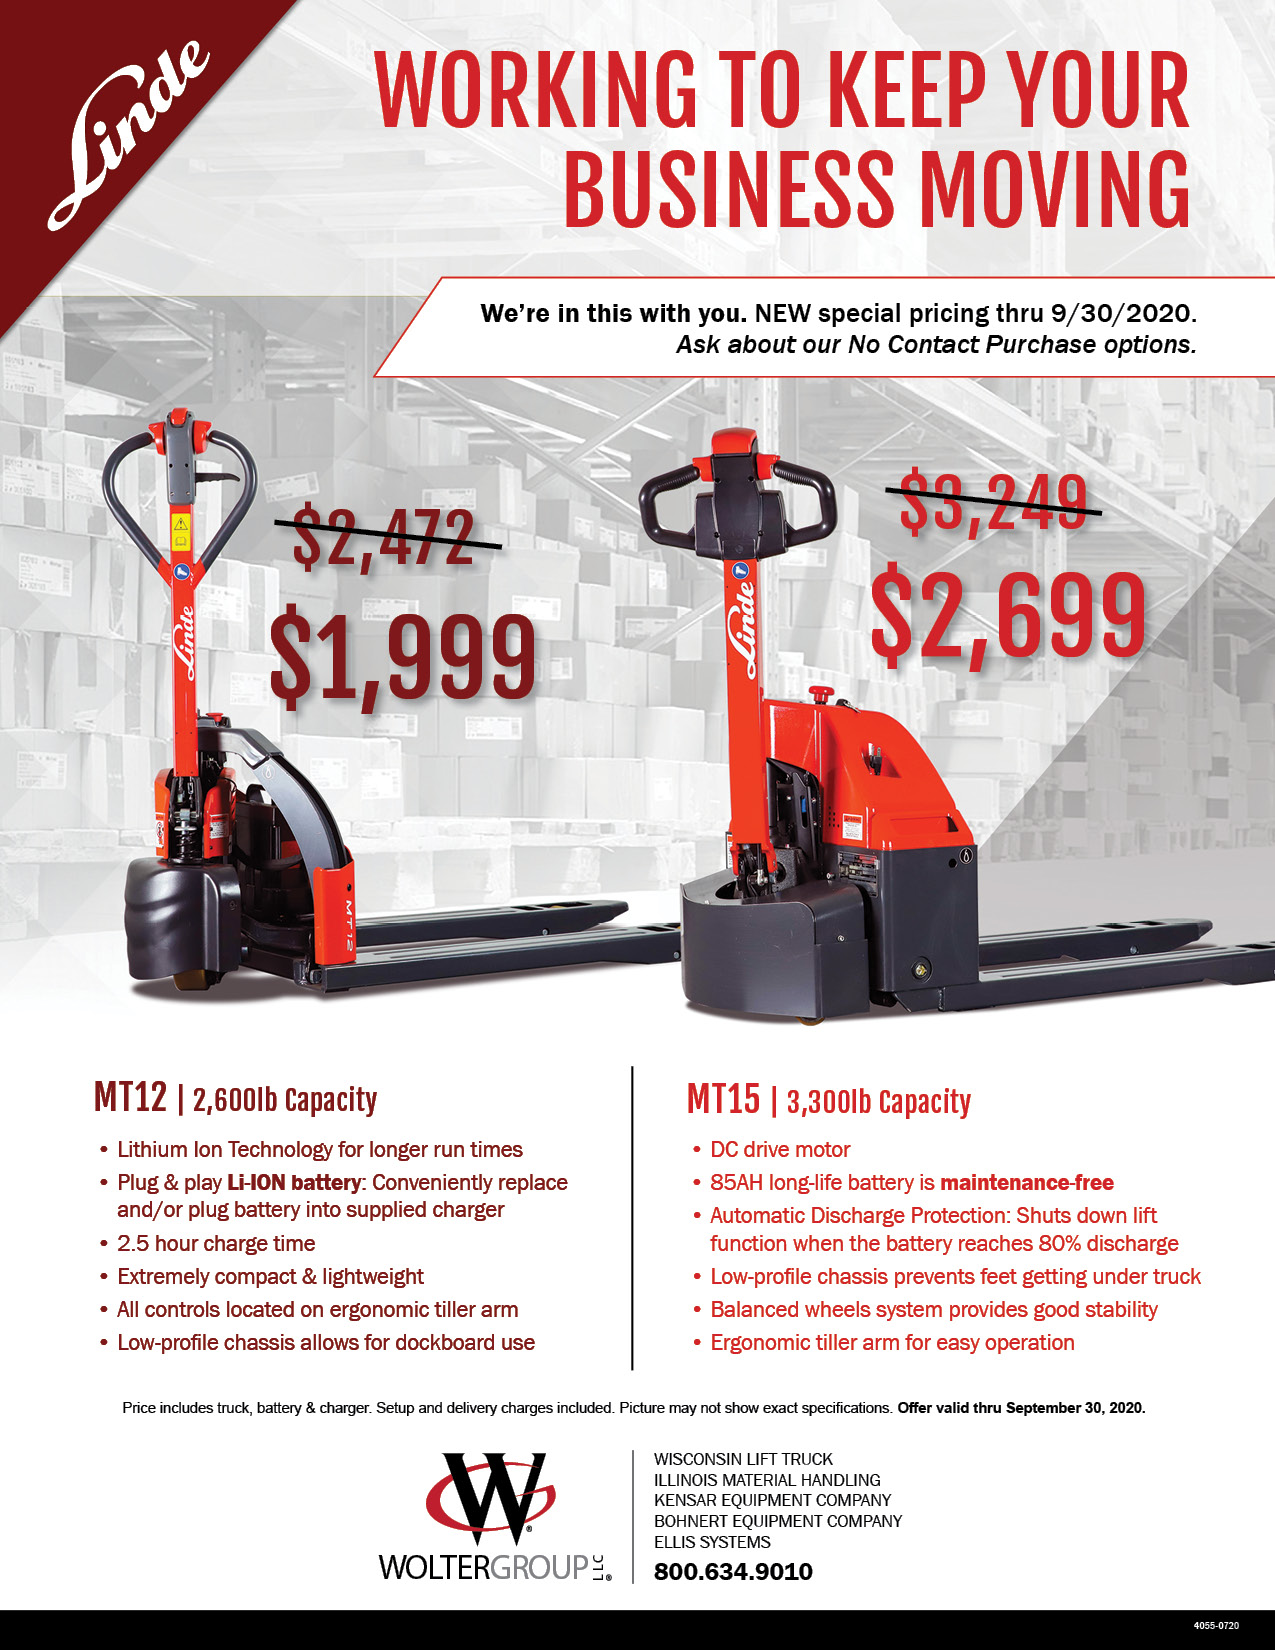 Linde Electric Pallet Trucks on sale from Wolter Group LLC. Order by 9-30-2020 to qualify for special pricing!